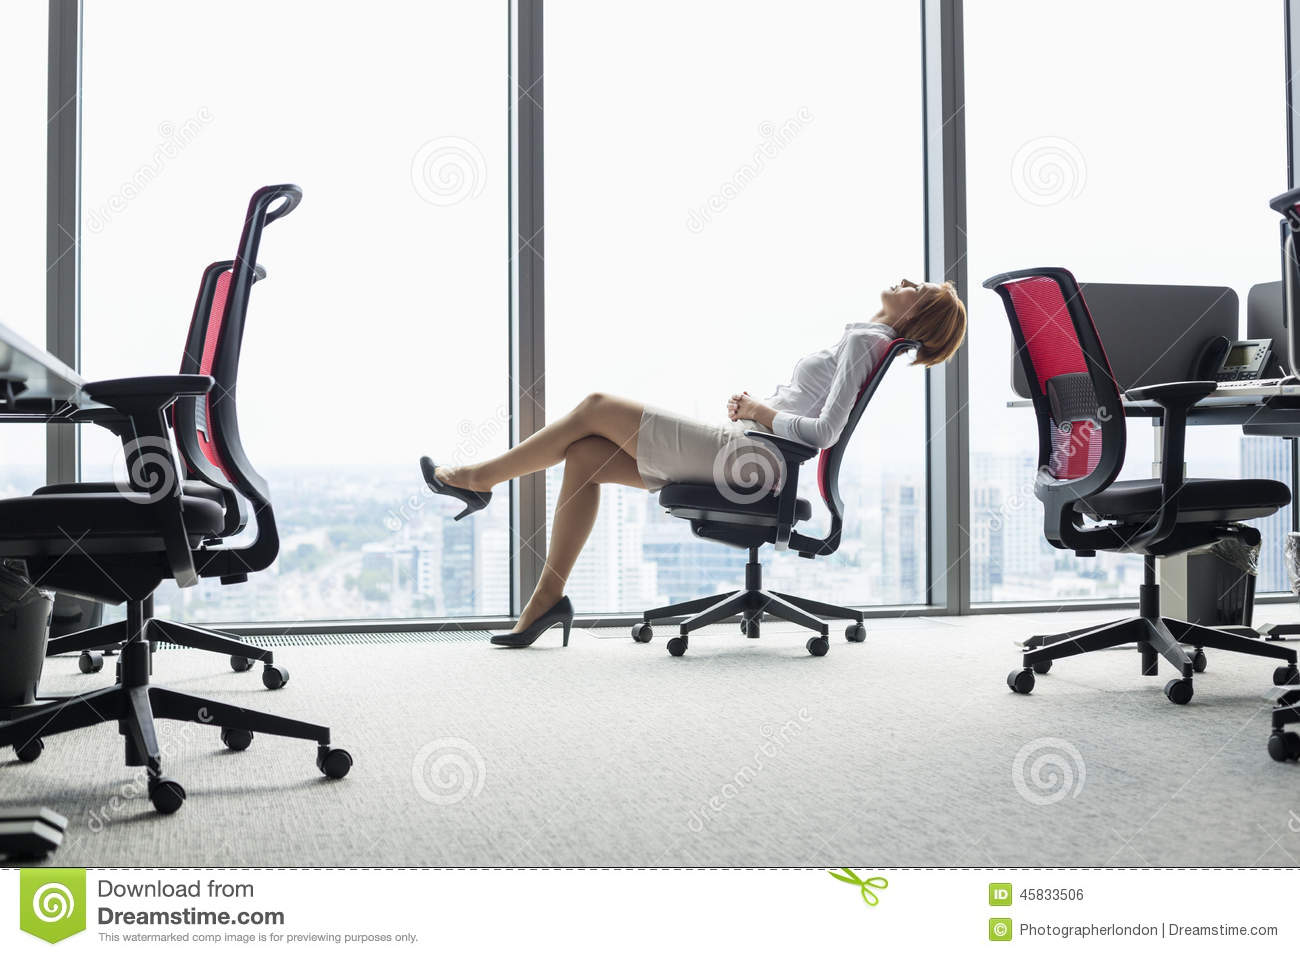 office chair leaning to one side amazon bar covers full length view of young businesswoman back